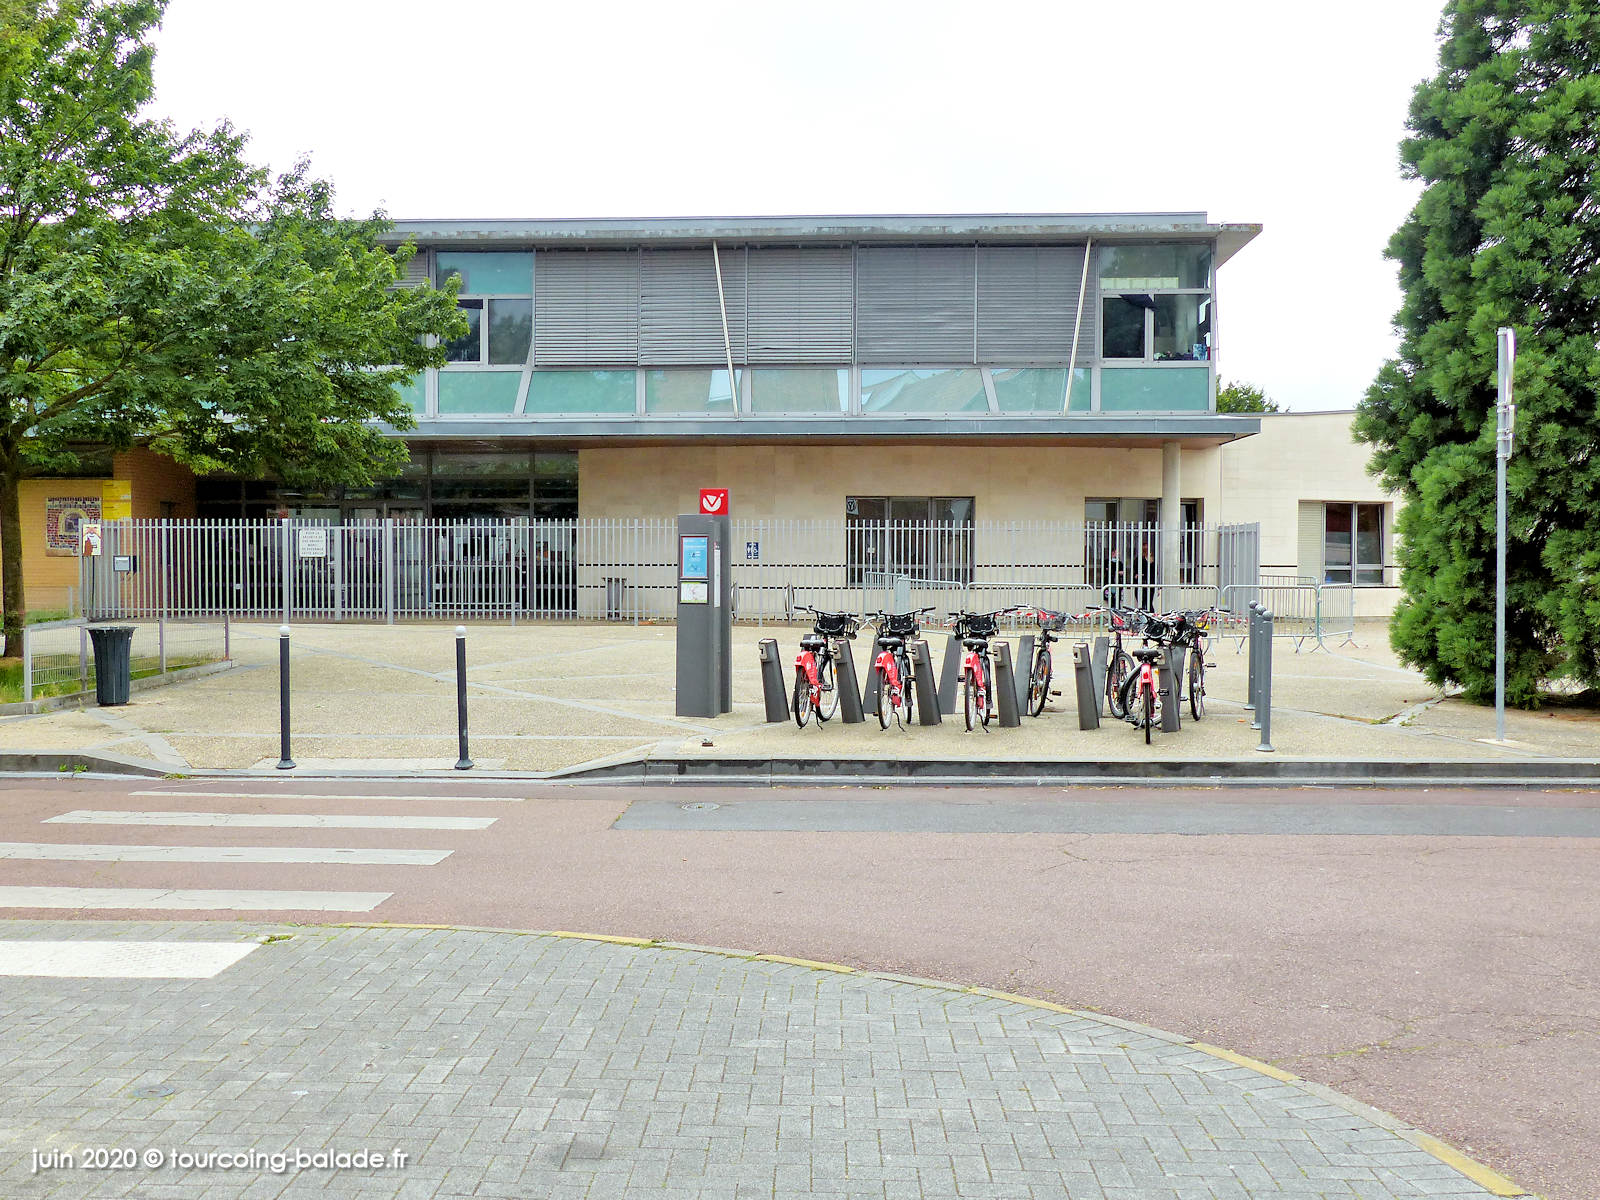 Groupe Scolaire Paul Bert, Tourcoing 2020